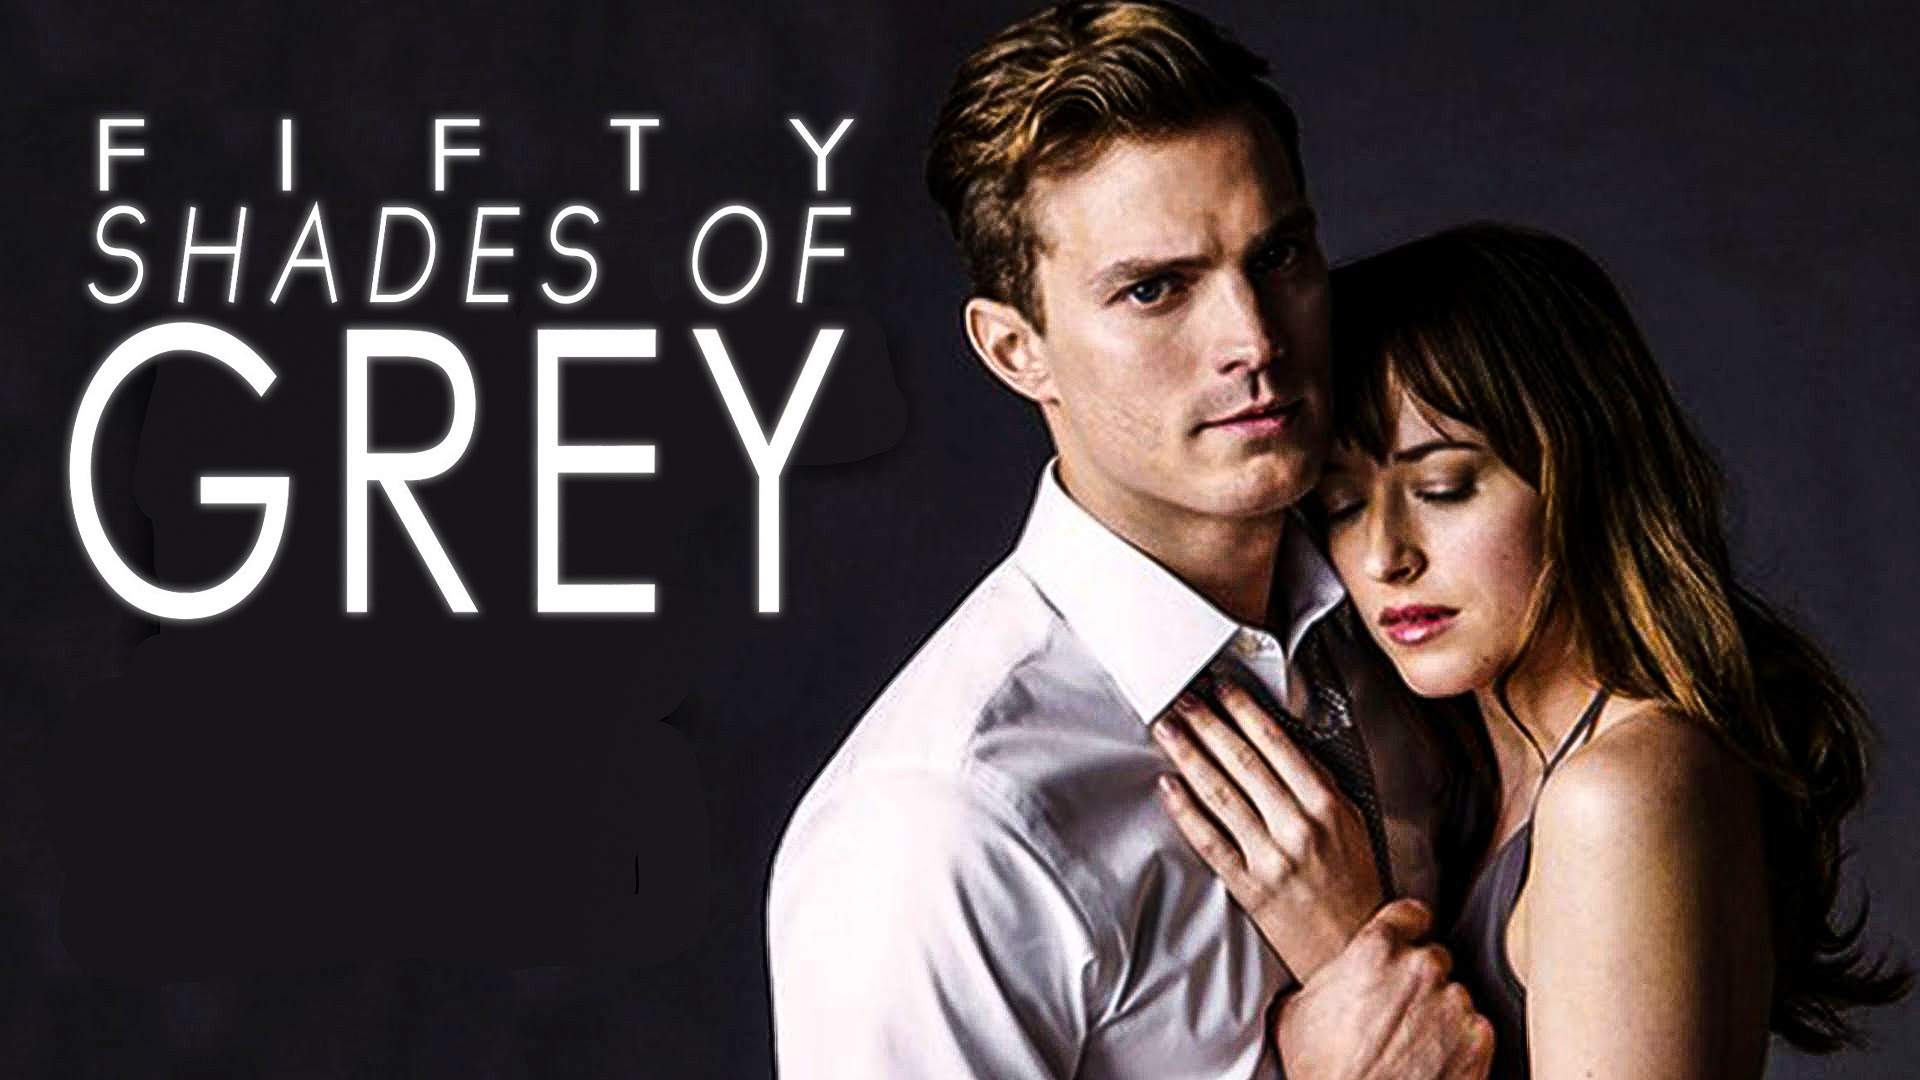 Fifty Shades Of Grey Wallpaper 4